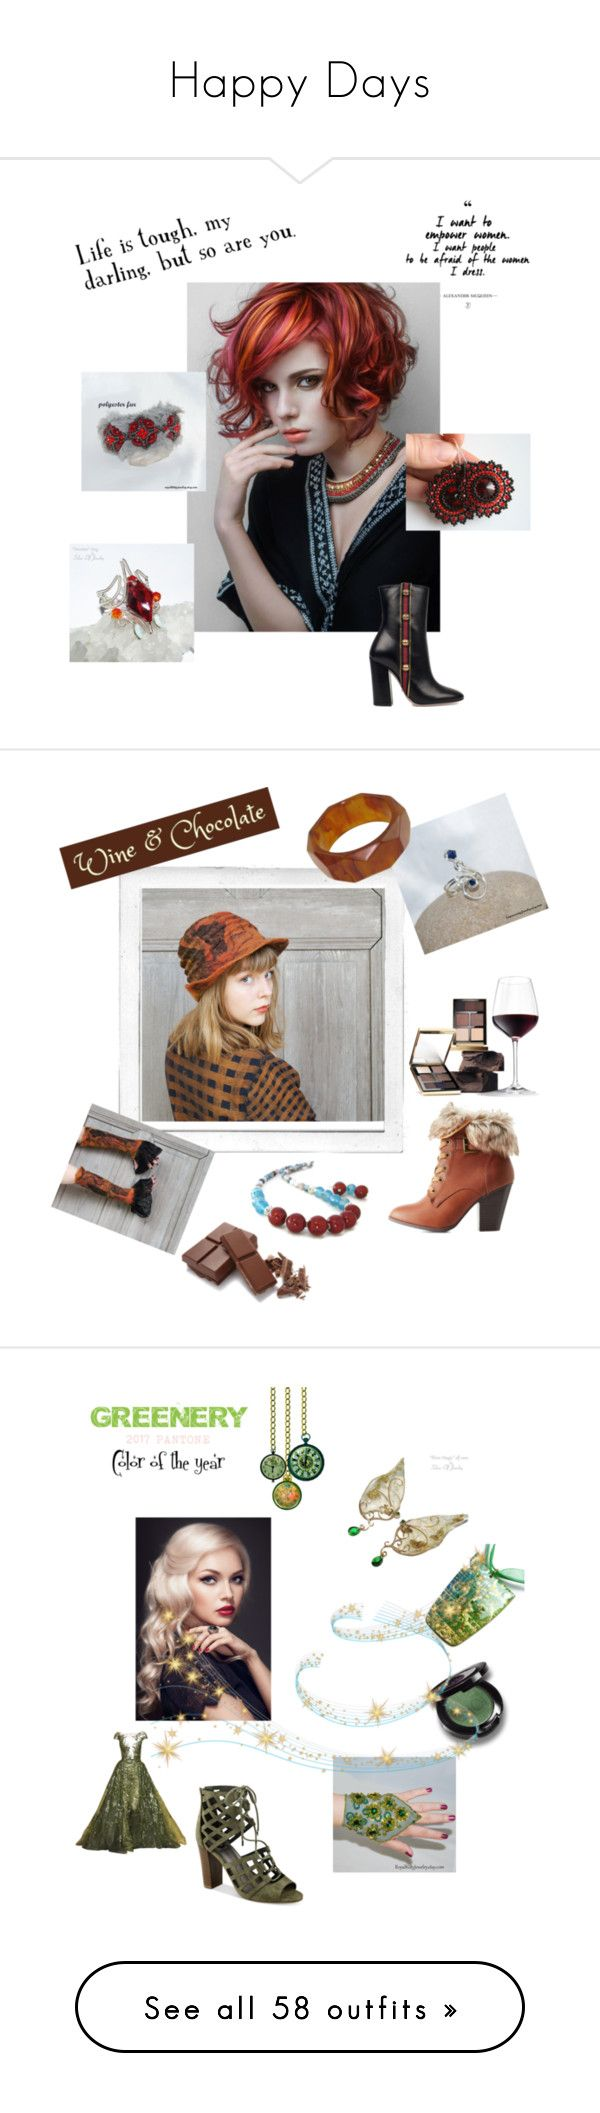 """""""Happy Days"""" by lyriel-moonshadow ❤ liked on Polyvore featuring Gucci, Polaroid, Charlotte Russe, Bobbi Brown Cosmetics, G by Guess, Murad, art, Alpha Industries, Anya Hindmarch and Avon"""